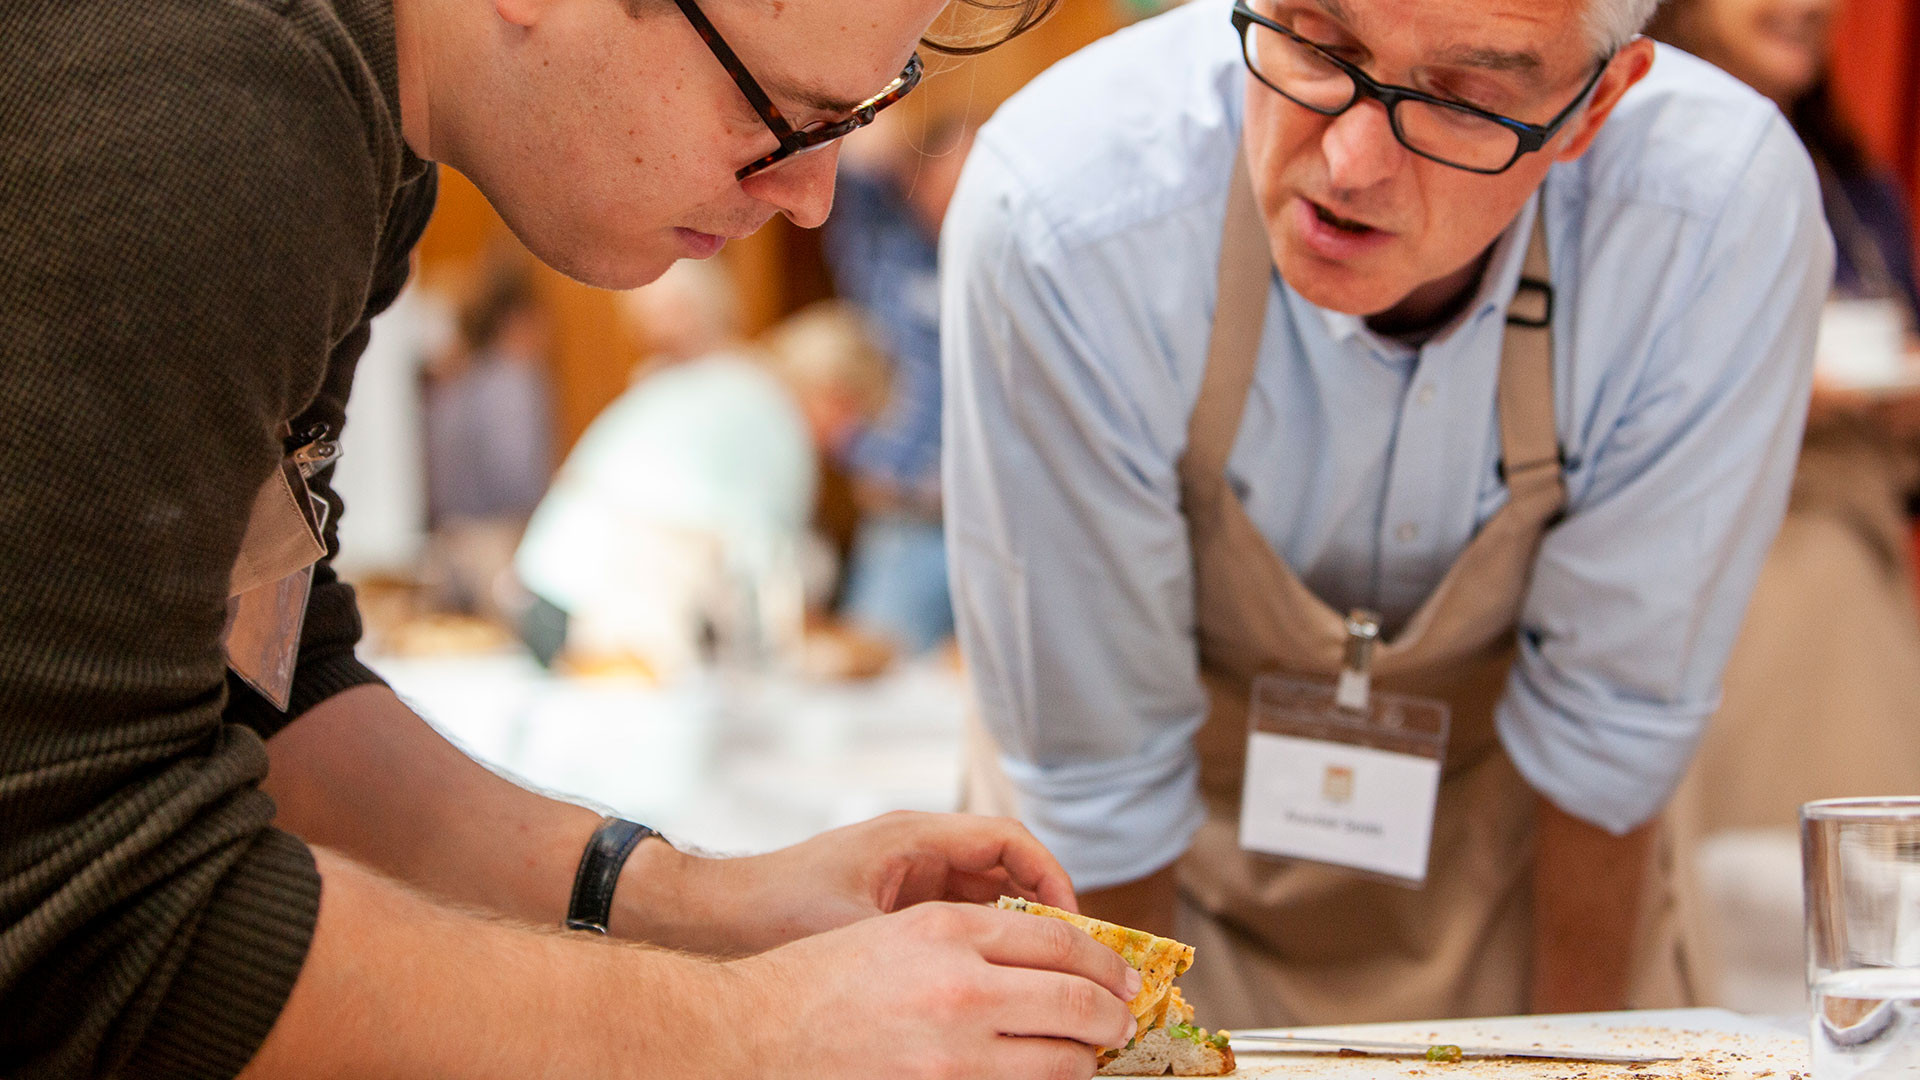 Mike Gibson (left) judging at the World Bread Awards